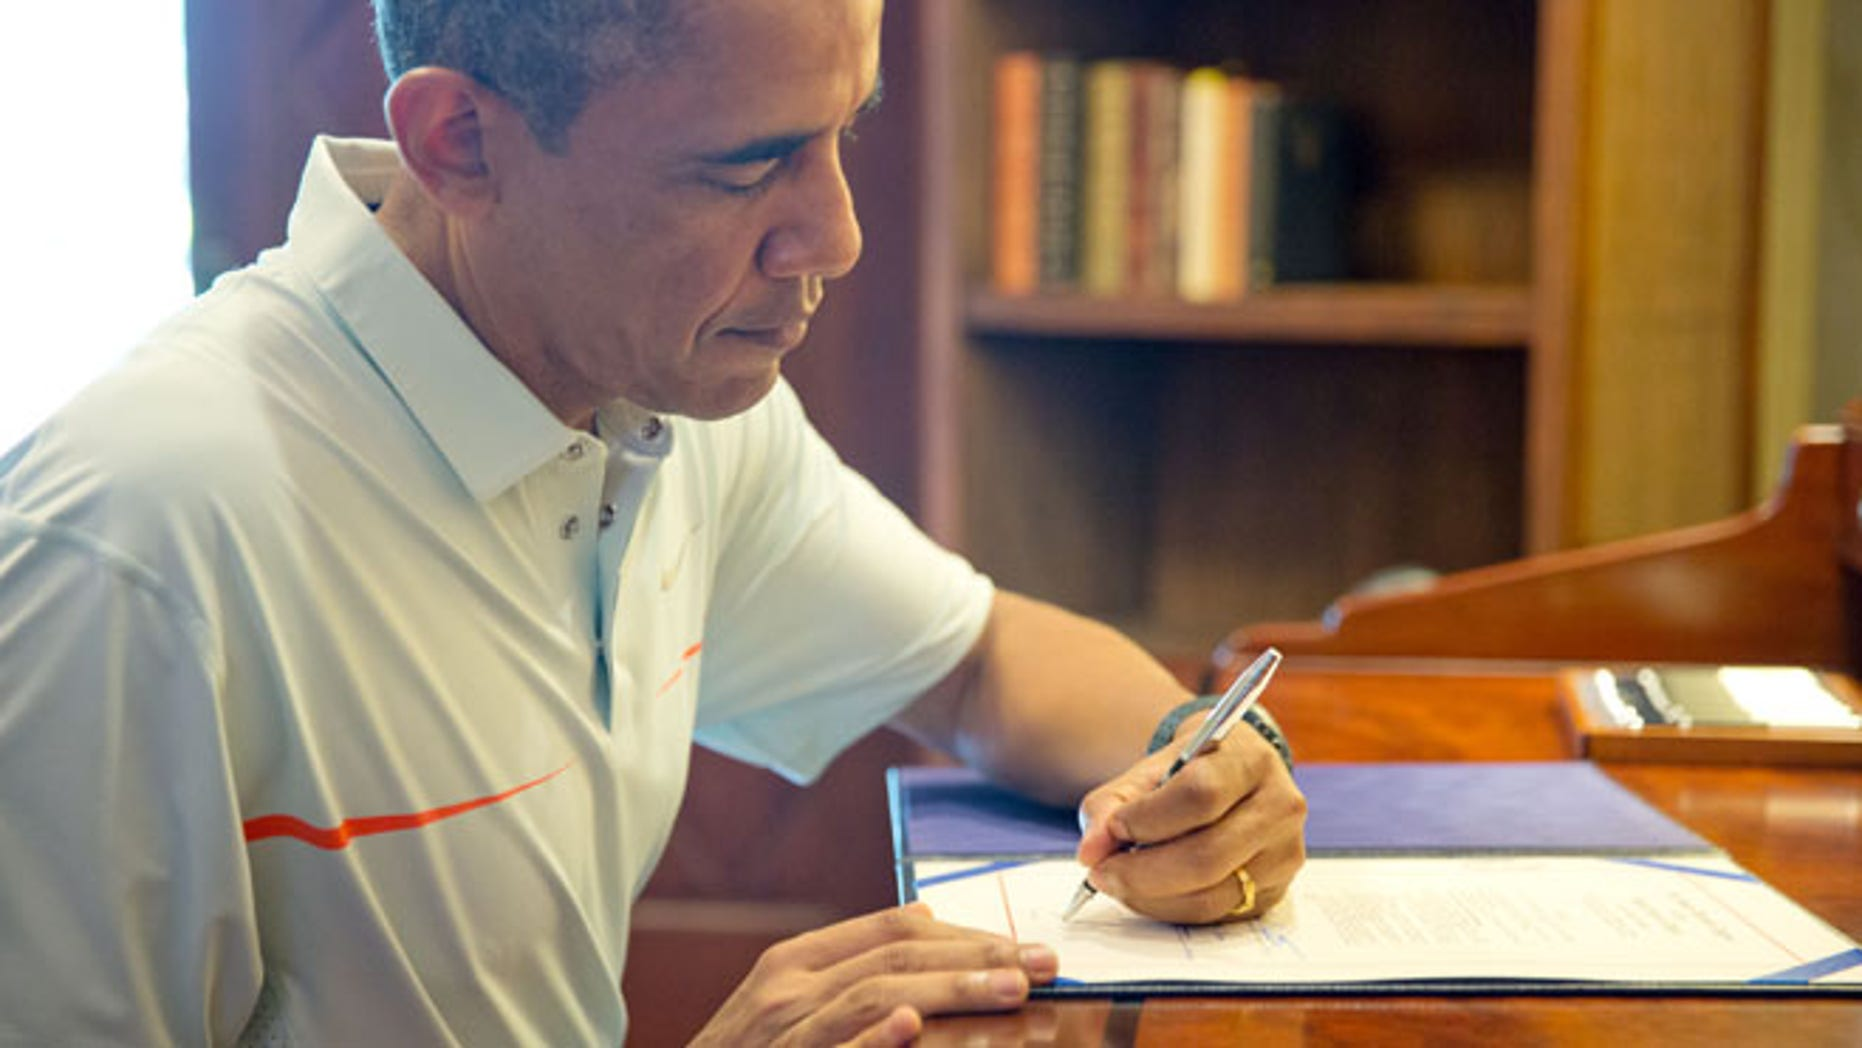 Dec. 26, 2013: President Barack Obama signs bills in Kailua, Hawaii.(Official White House Photo by Pete Souza)